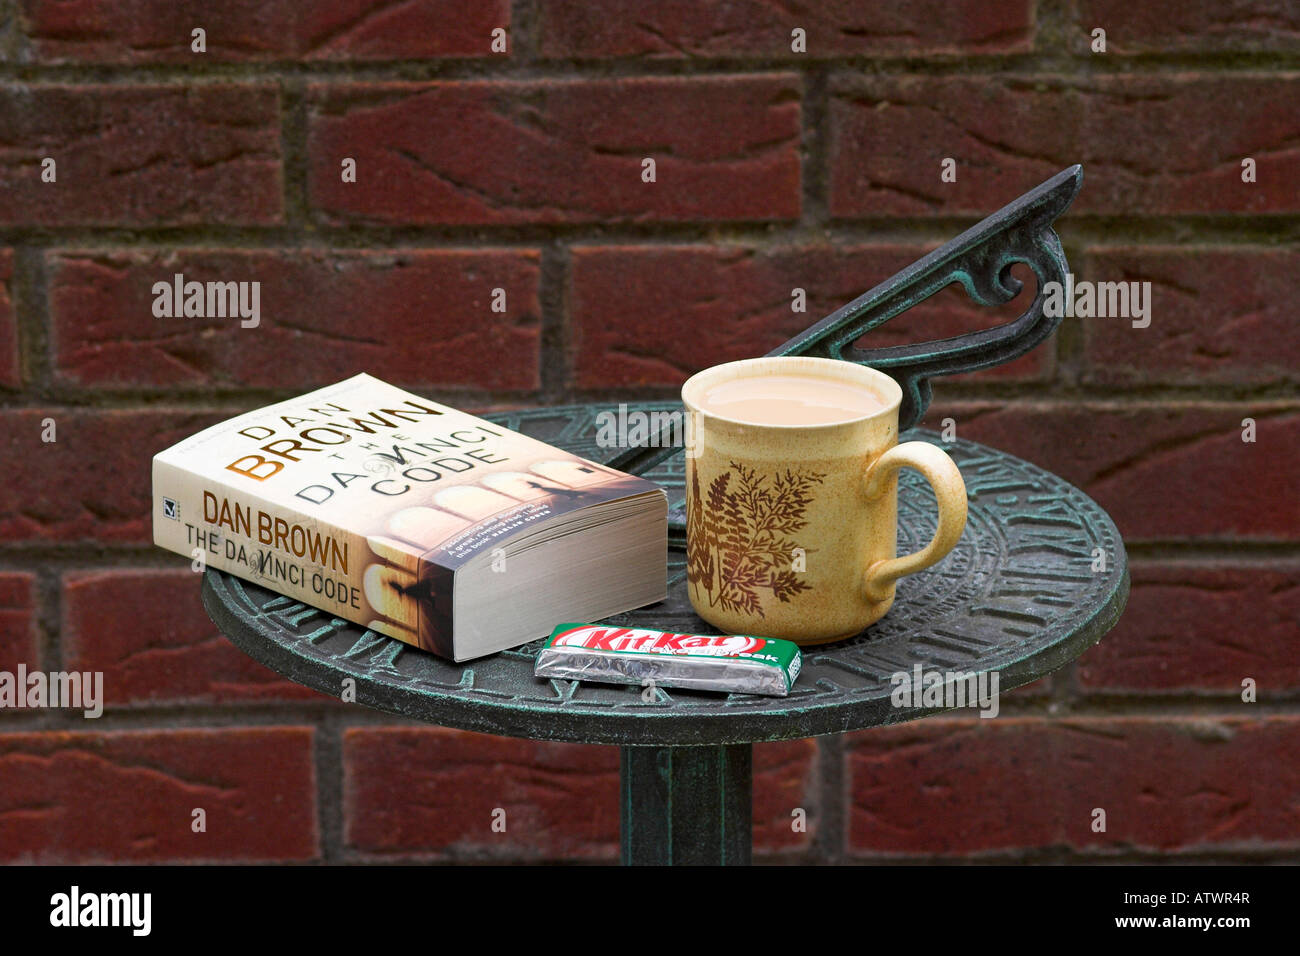 Break time.  A mug of tea, a Kit-Kat chocolate wafer and a copy of Dan Brown's The Da Vinci Code on sundial. - Stock Image